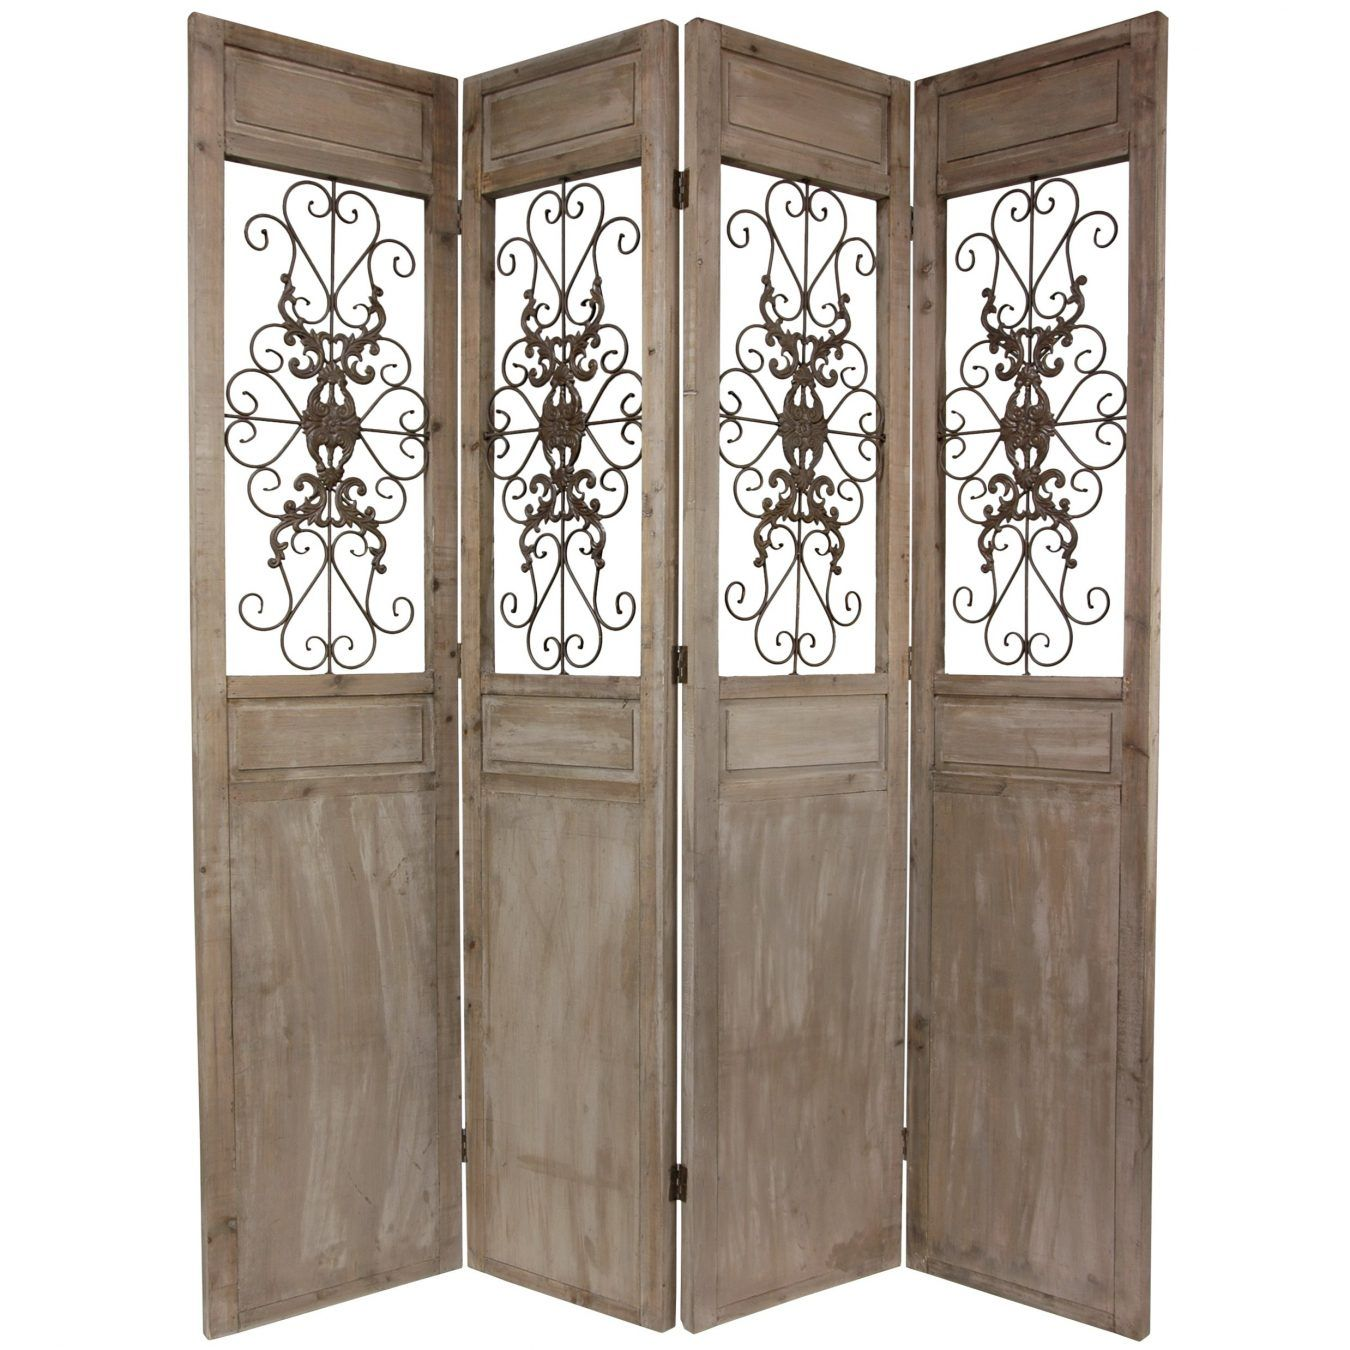 Tall Railing Scrolls Room Divider Wide Selection Of Dividers Shoji Screens Oriental And Asian Home Furnishings Chinese Lamps Accessories At